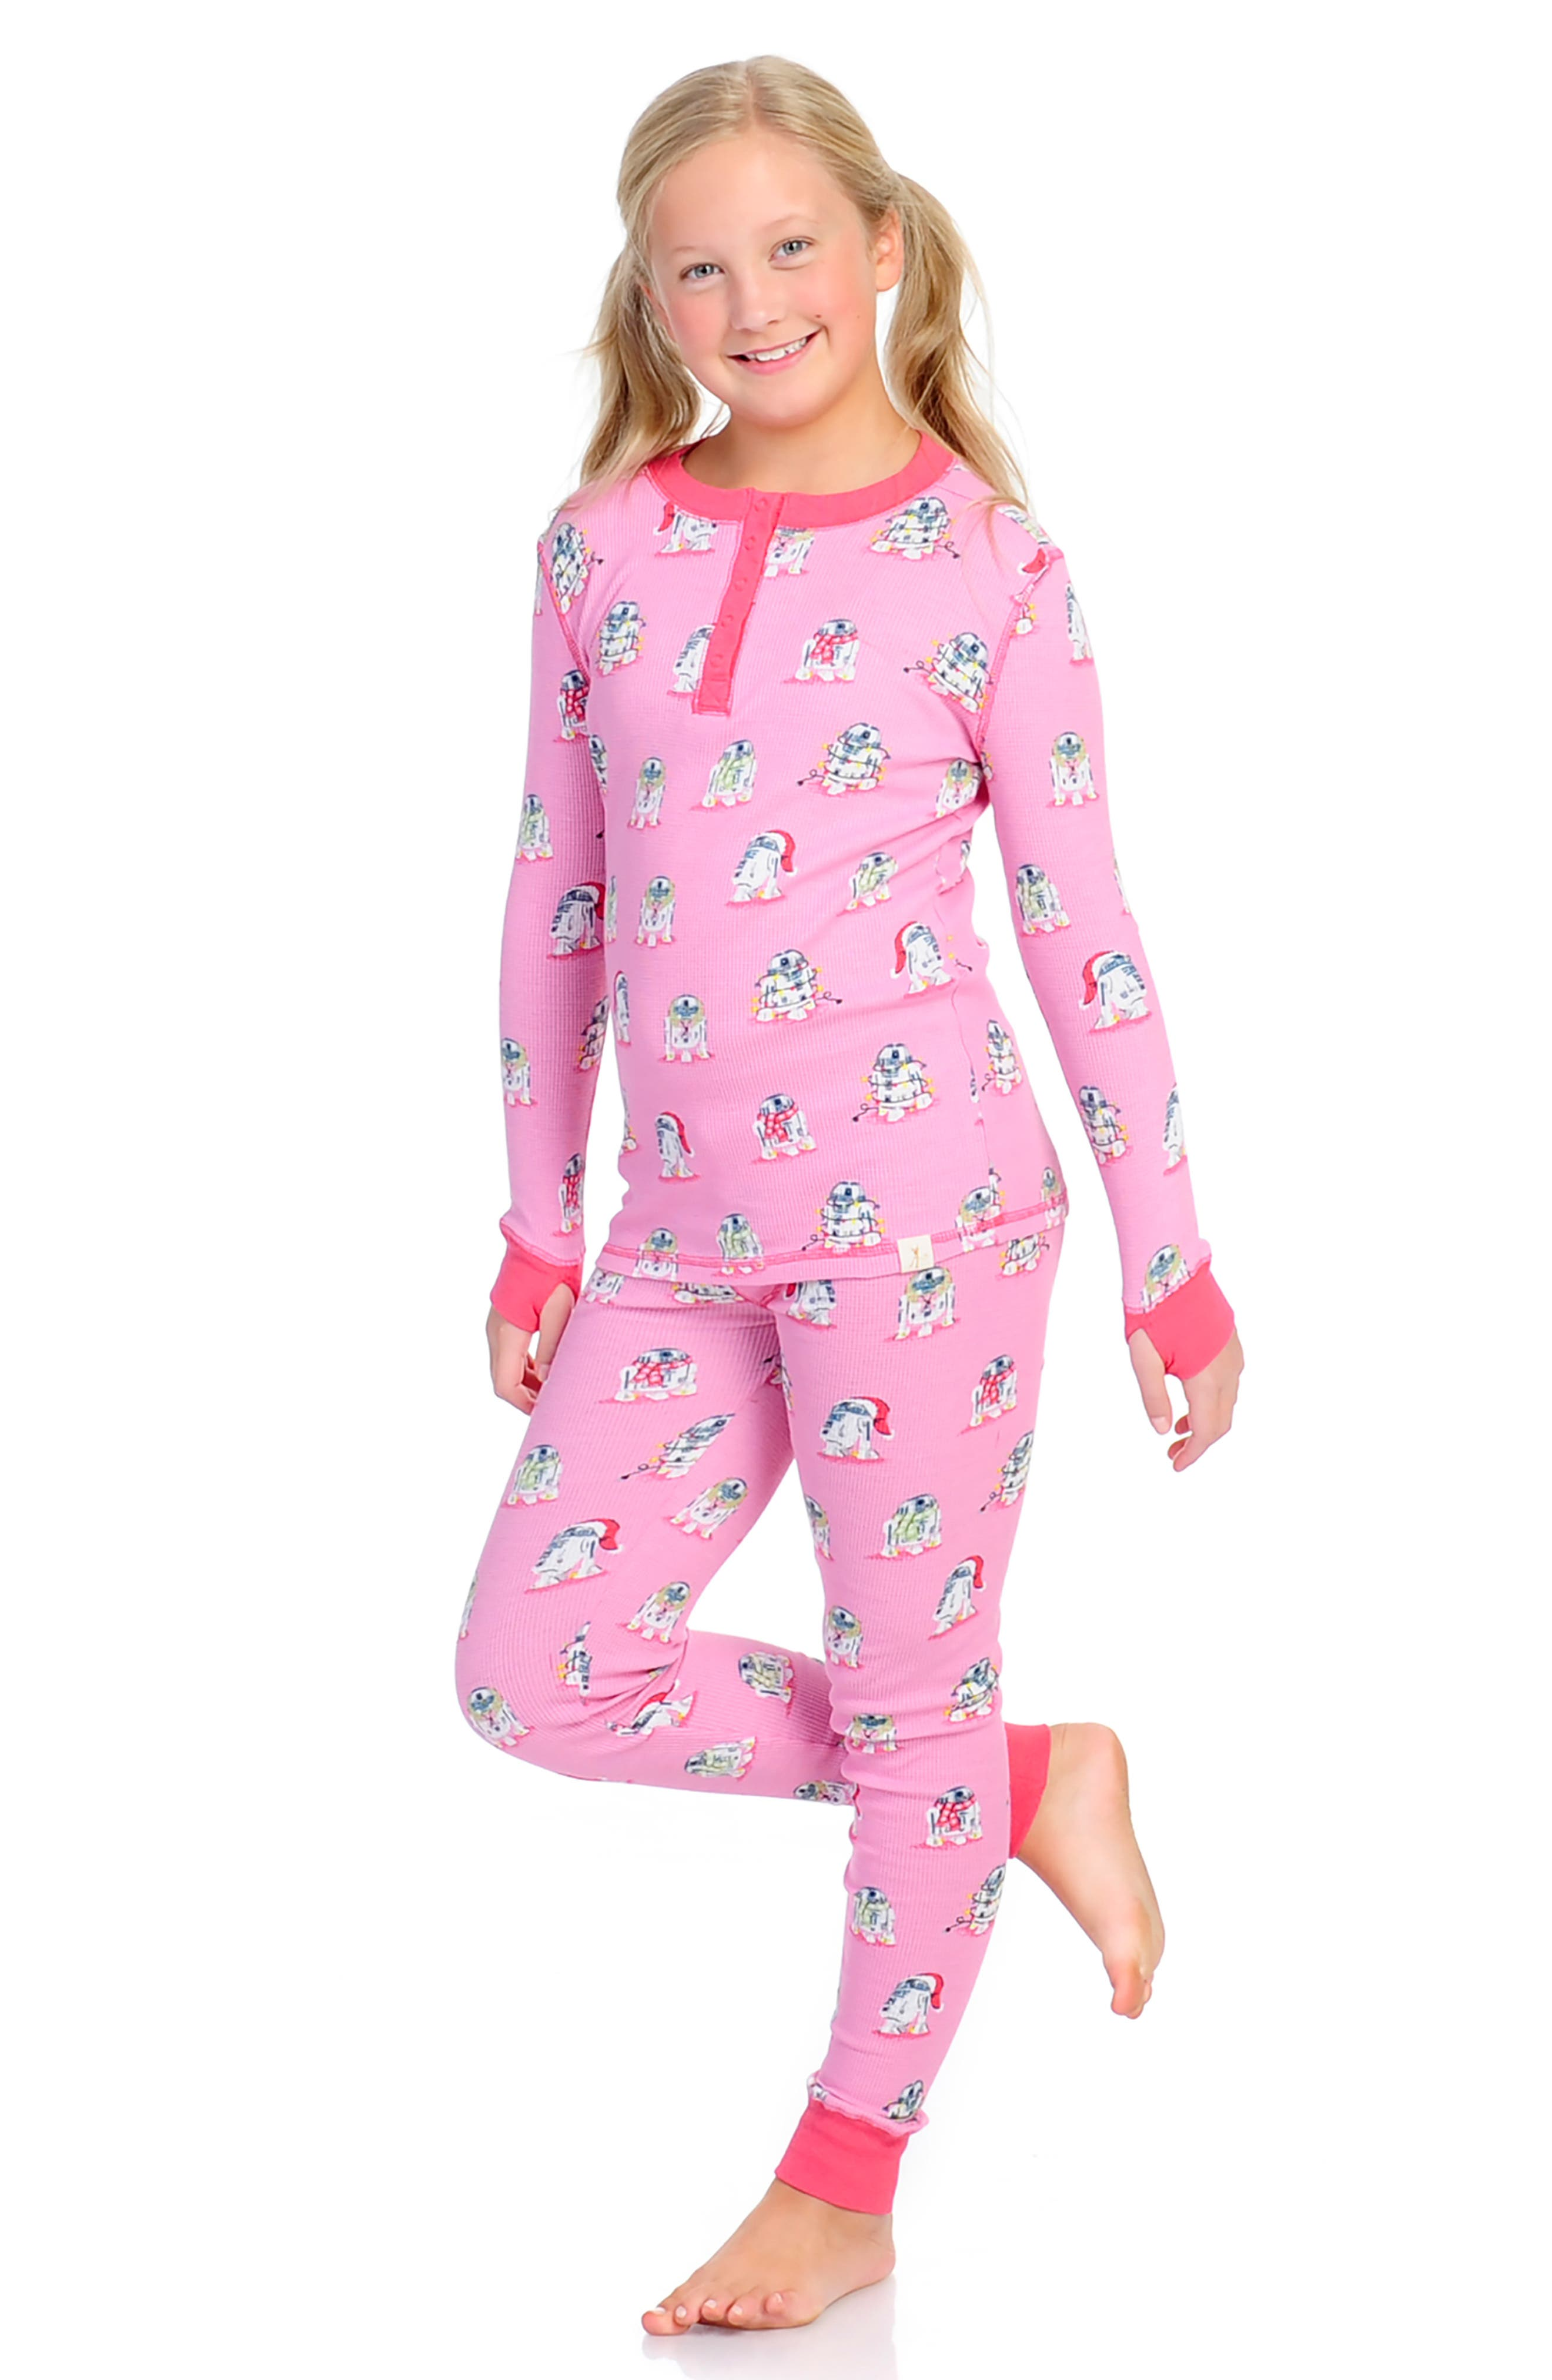 Star Wars<sup>™</sup> Slumber Fitted Two-Piece Thermal Pajamas,                             Alternate thumbnail 3, color,                             PINK STAR WARS